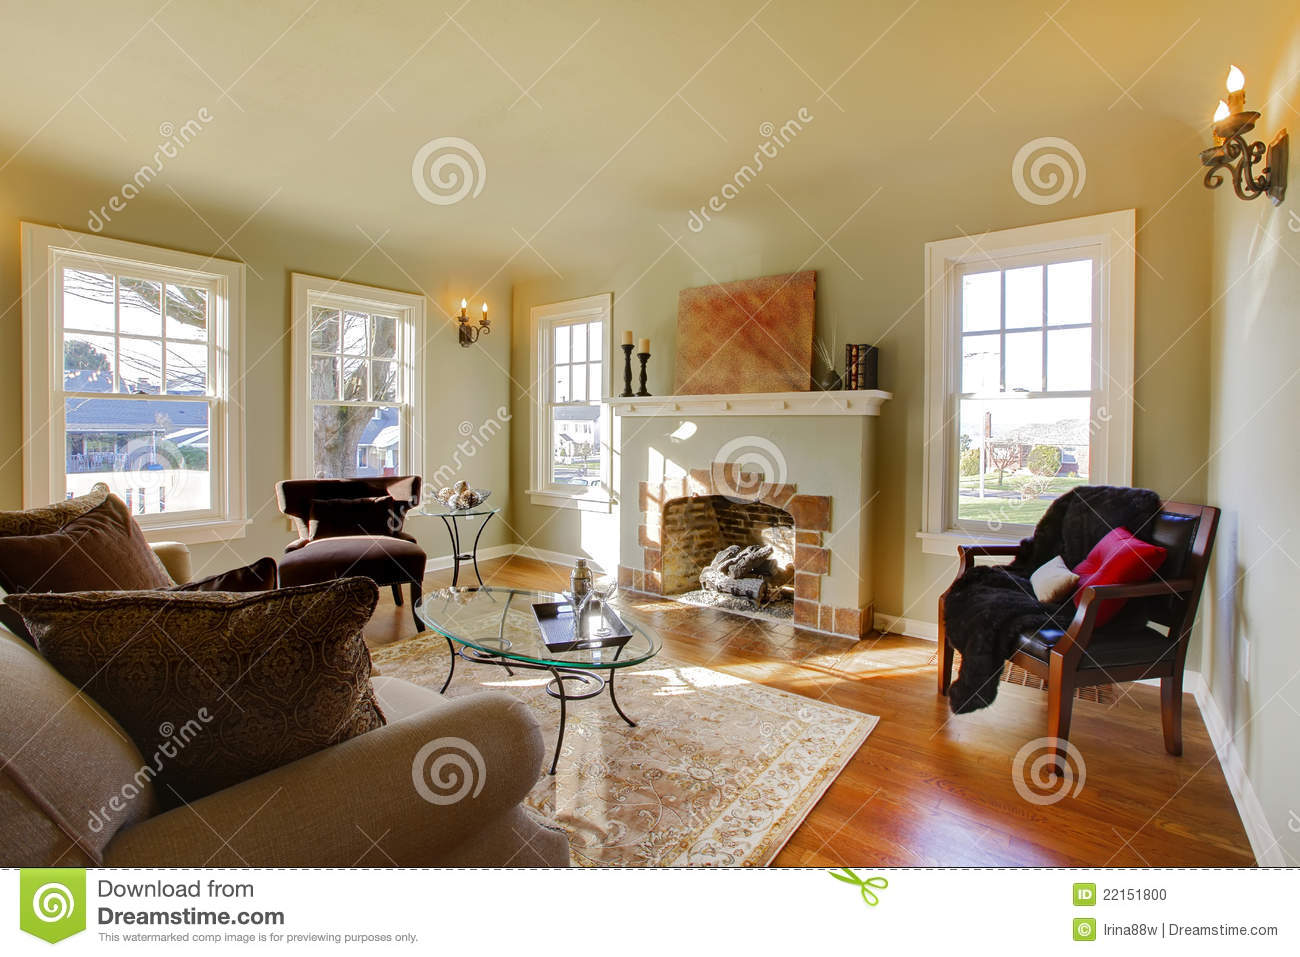 Beautiful Living Room With Old Fireplace. Stock Photo ...